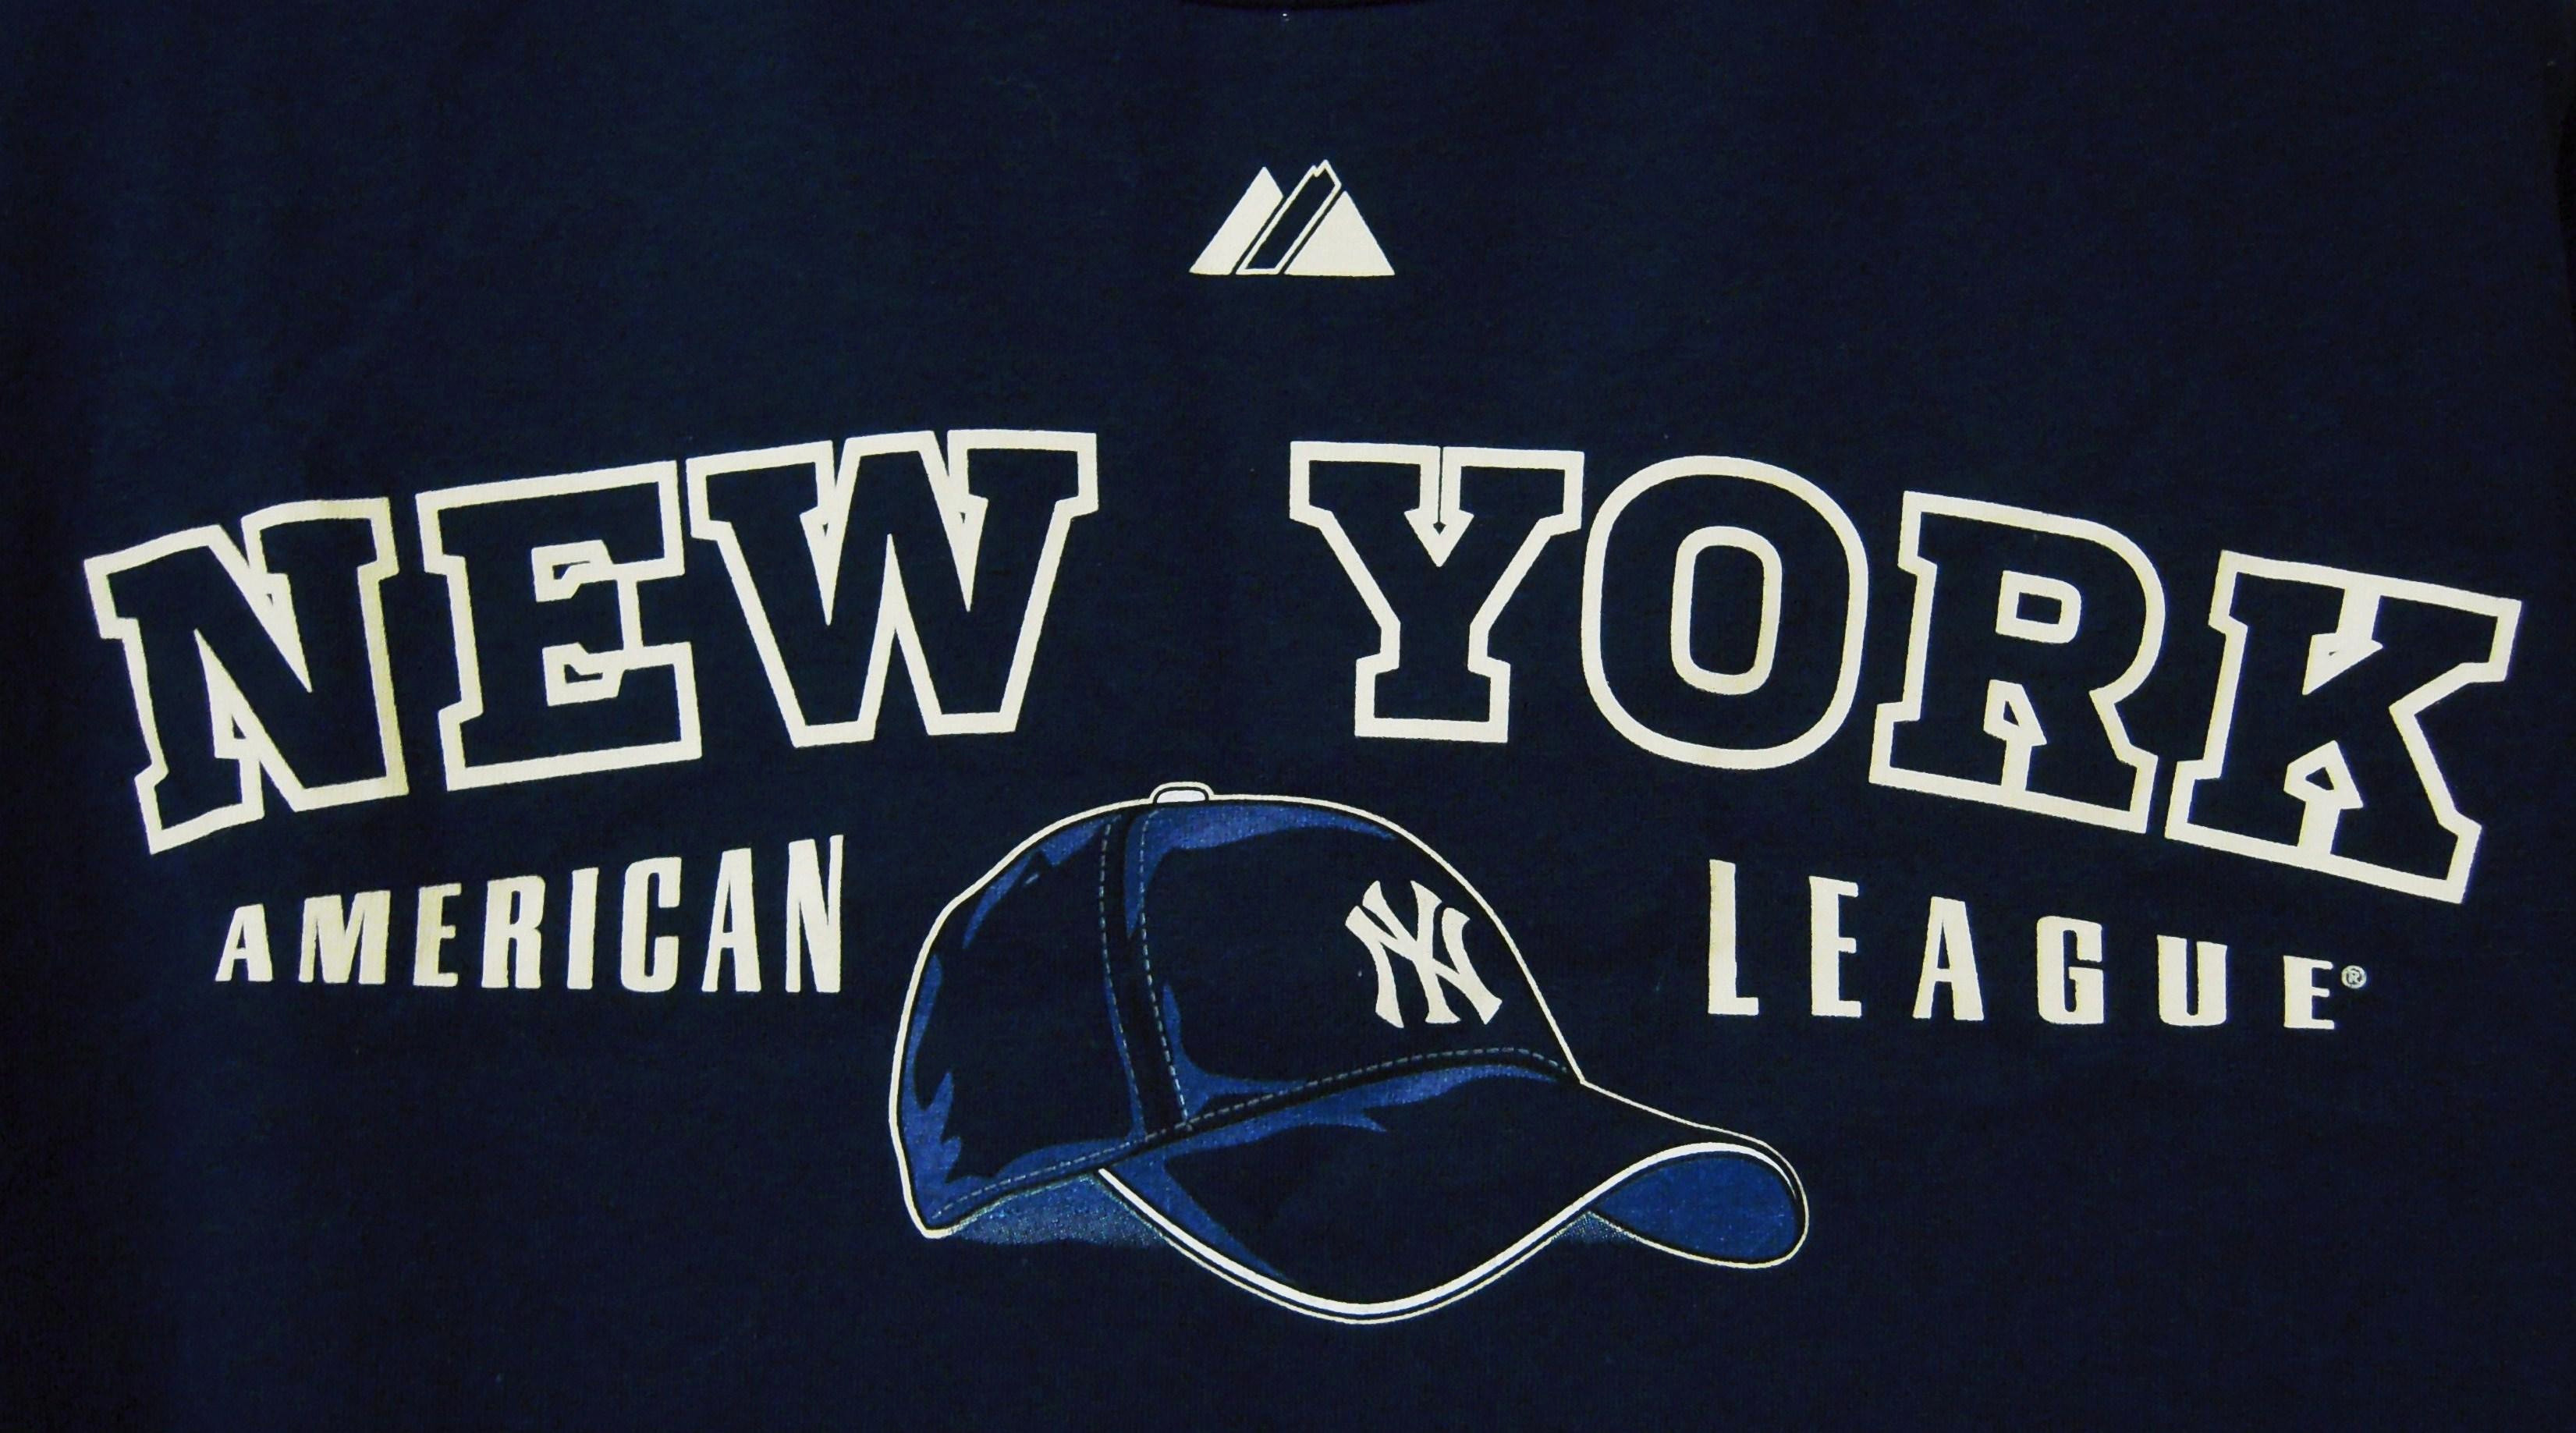 Res: 3302x1837, Yankees Wallpaper Luxury New York Yankees Baseball Mlb Fs Wallpaper